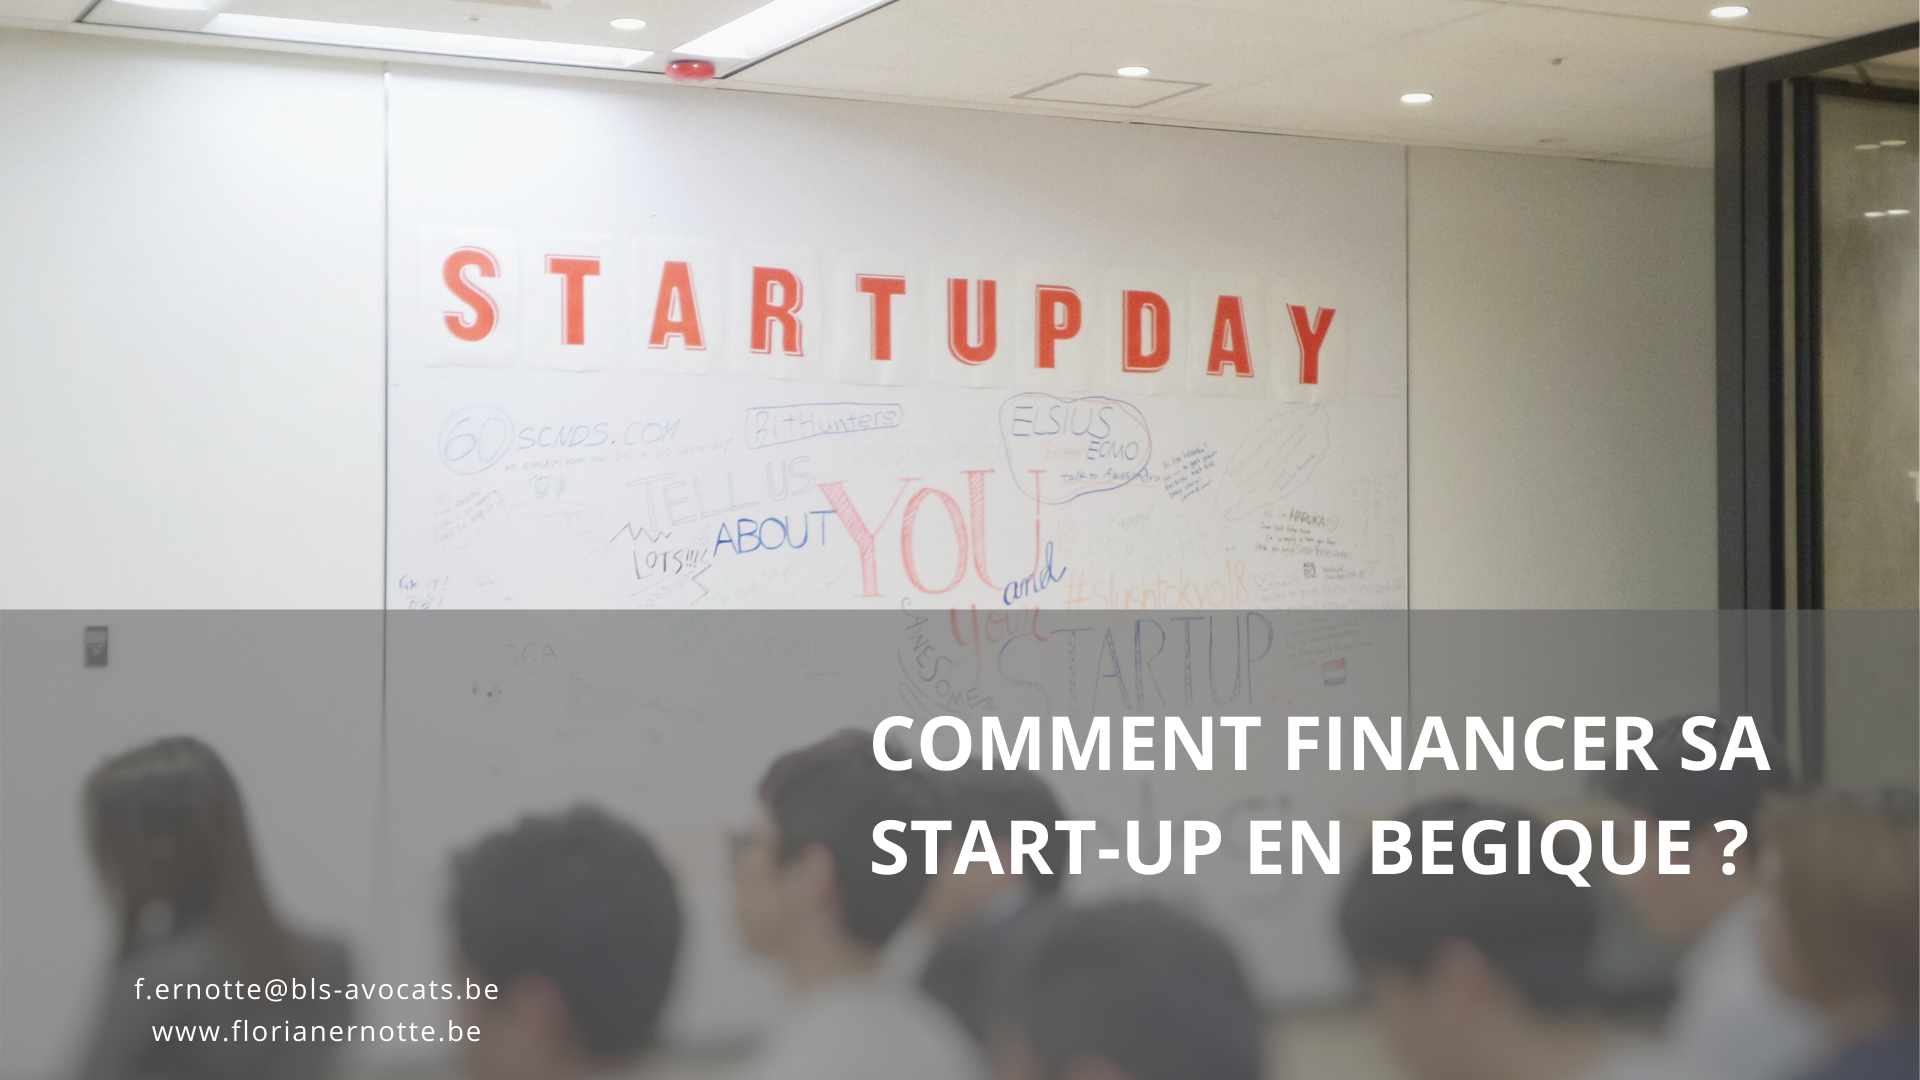 Comment financer sa start-up en Belgique?<div class='yasr-stars-title yasr-rater-stars-vv' id='yasr-visitor-votes-readonly-rater-7155a41266098' data-rating='0' data-rater-starsize='16' data-rater-postid='2113' data-rater-readonly='true' data-readonly-attribute='true' data-cpt='posts' ></div><span class='yasr-stars-title-average'>0 (0)</span>